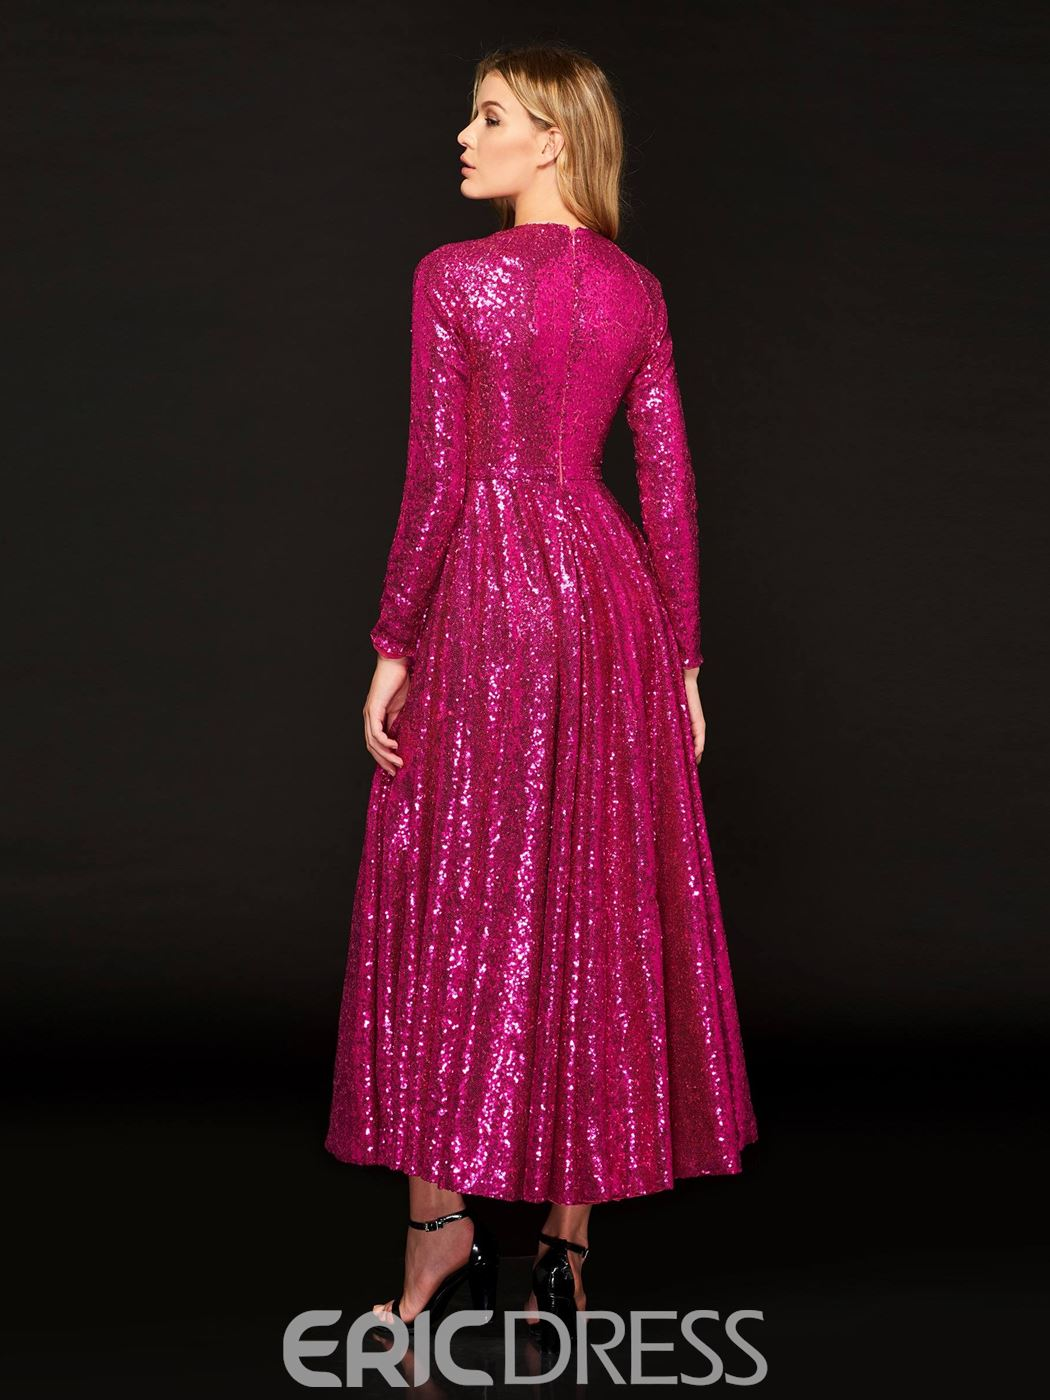 2bc9798598902 Ericdress A Line Long Sleeve Sequin Reflective Prom Dress 13324989 ...